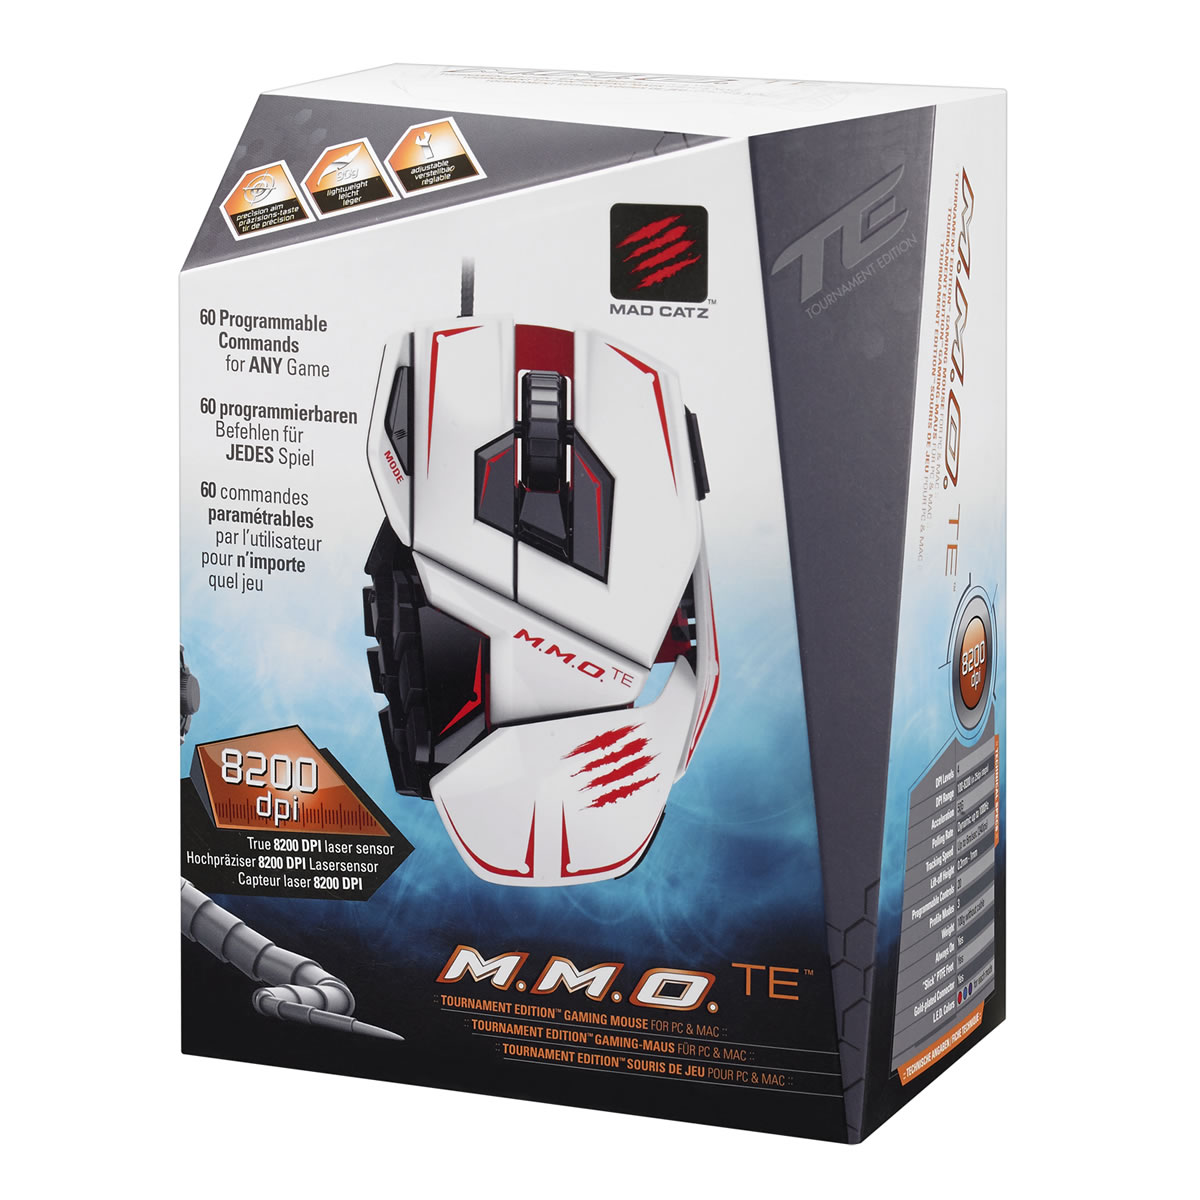 MAD CATZ CYBORG MMO TE Tournament Edition GAMING MOUSE - WHITE (PC)